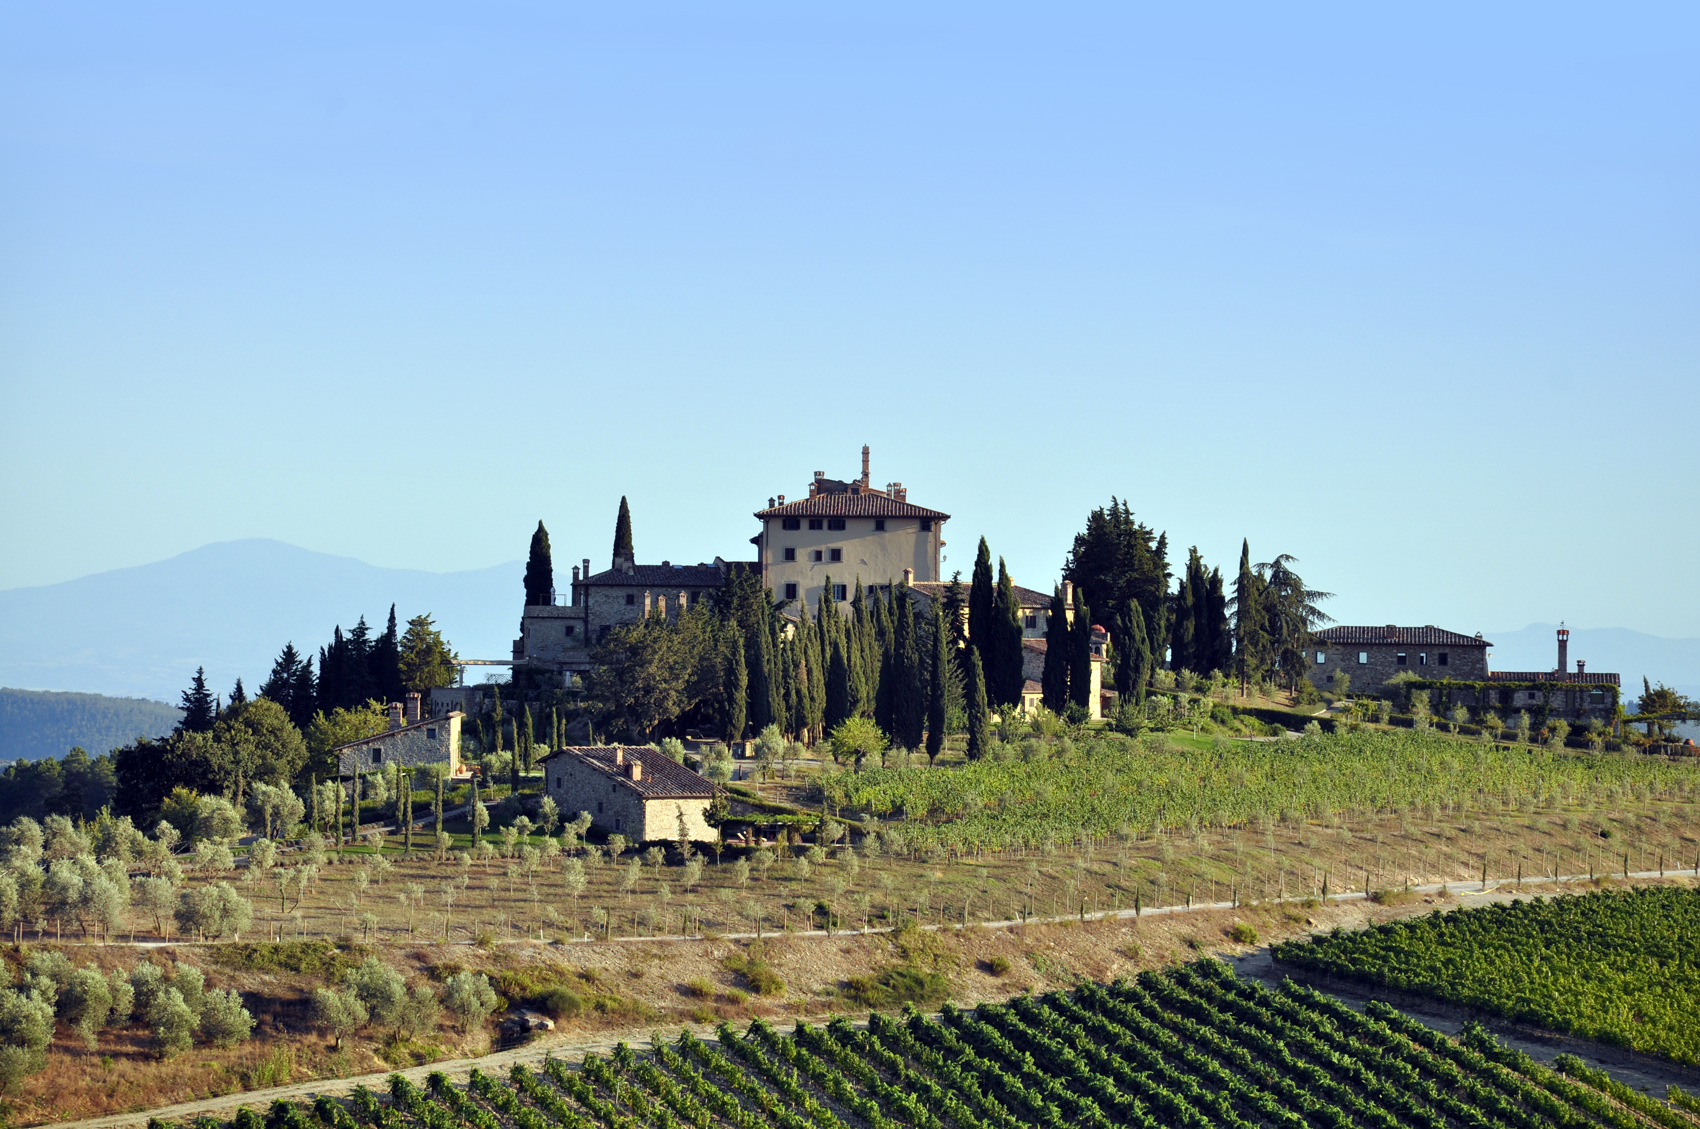 gaiole in chianti: its castles and its most significant churches